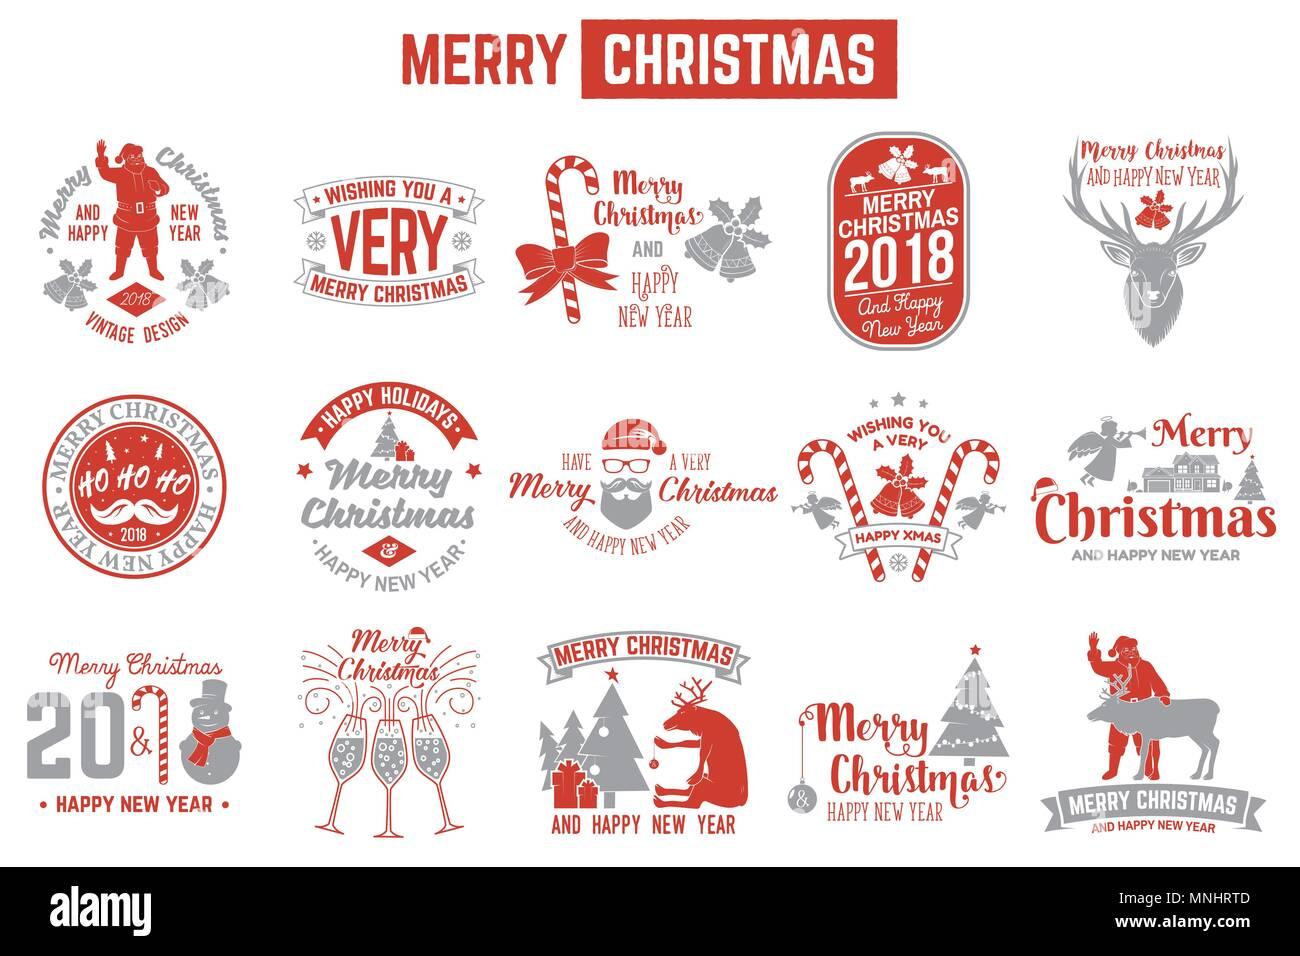 Merry Christmas and Happy New Year 2018 retro template with Santa ...